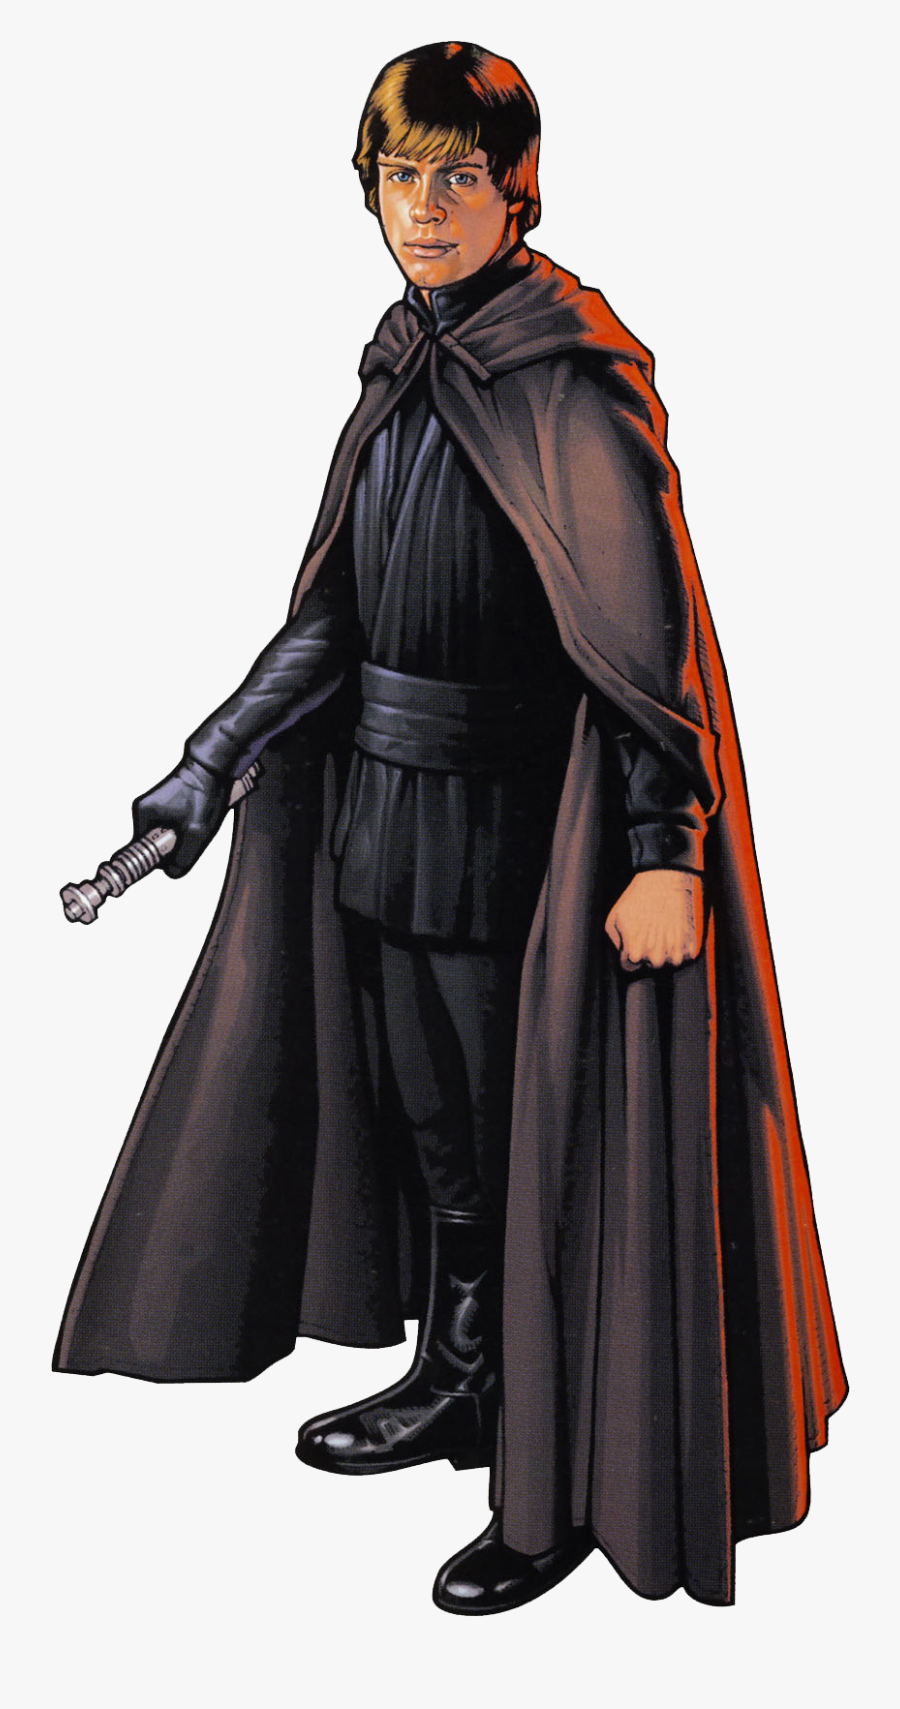 Luke Skywalker Png Picture - Star Wars Luke Skywalker Png, Transparent Clipart